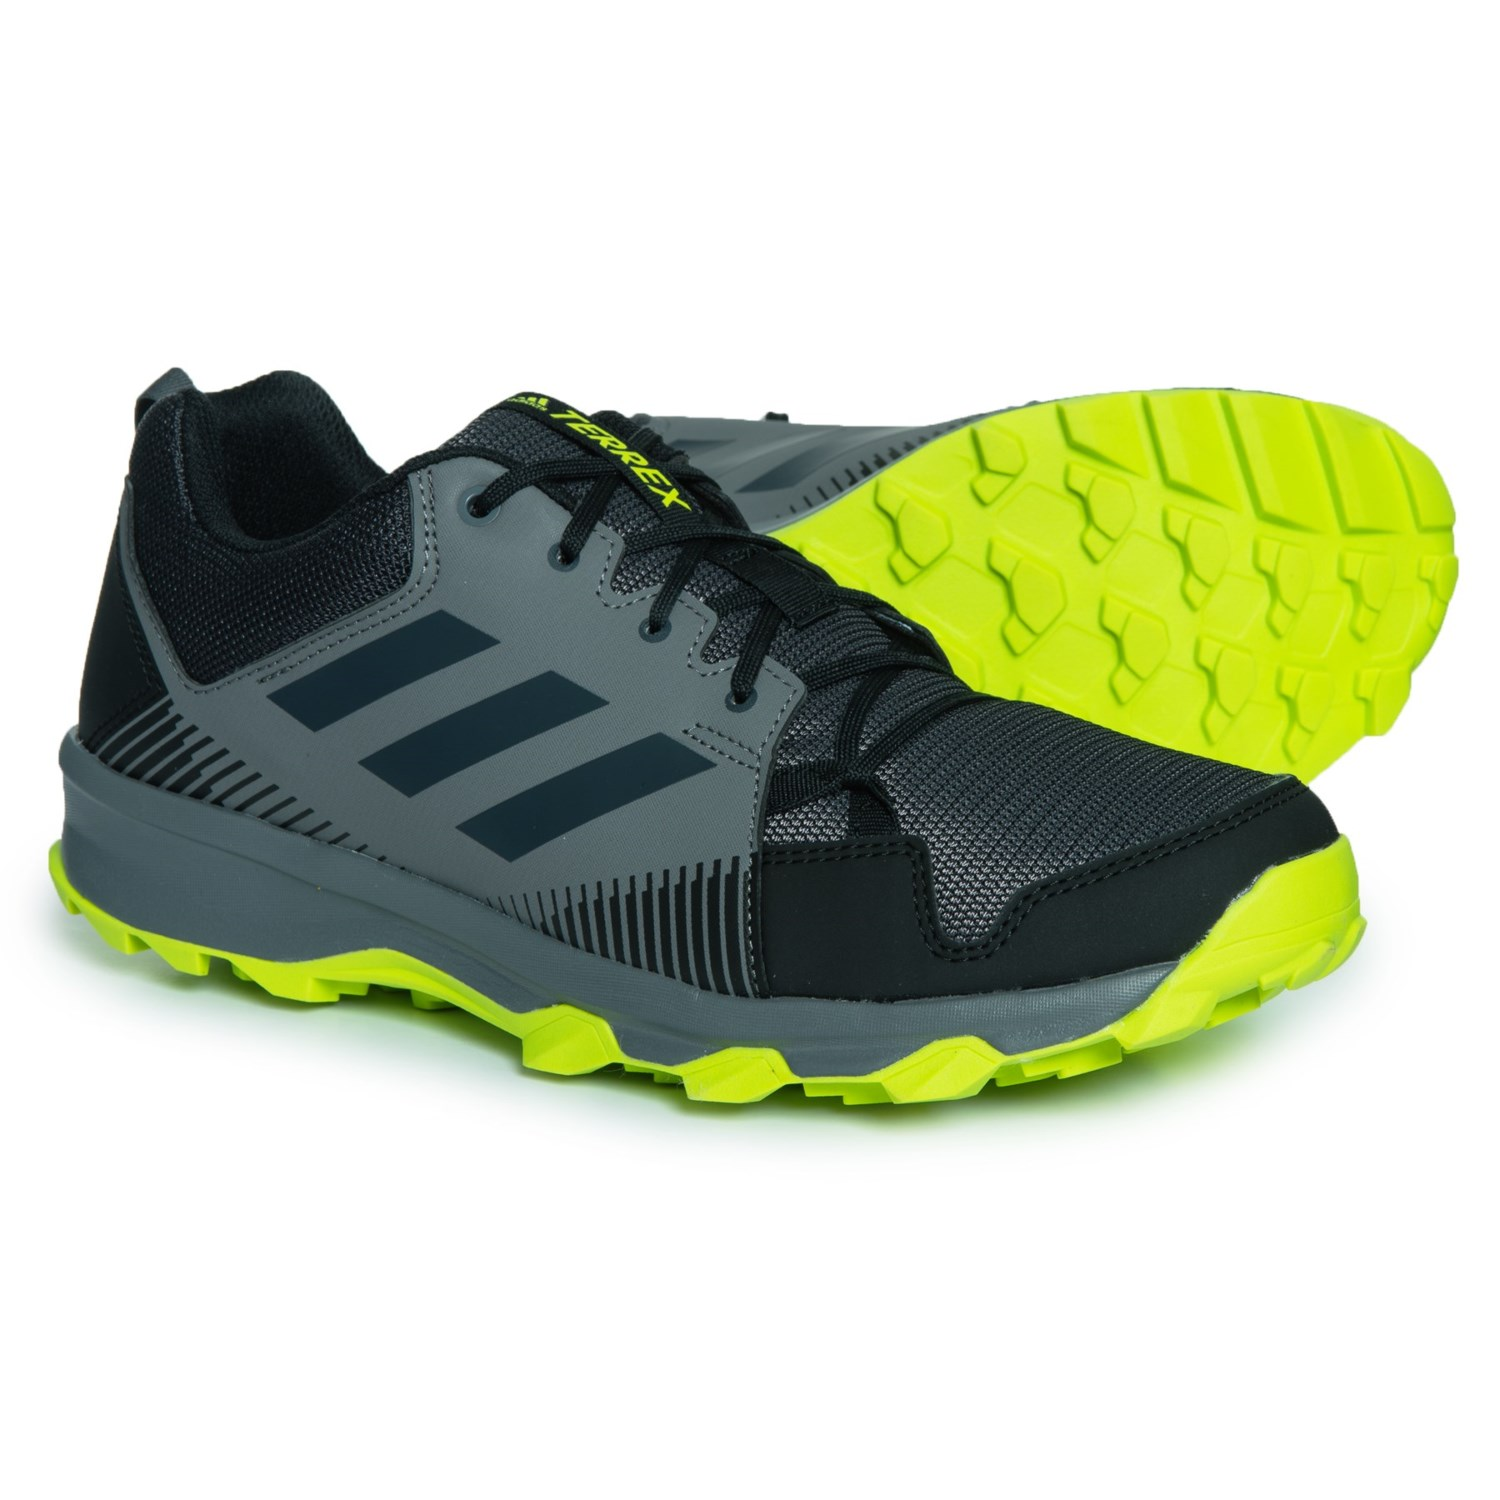 finest selection 43037 8919b adidas Terrex Tracerocker Trail Running Shoes (For Men) in Black Carbon Grey